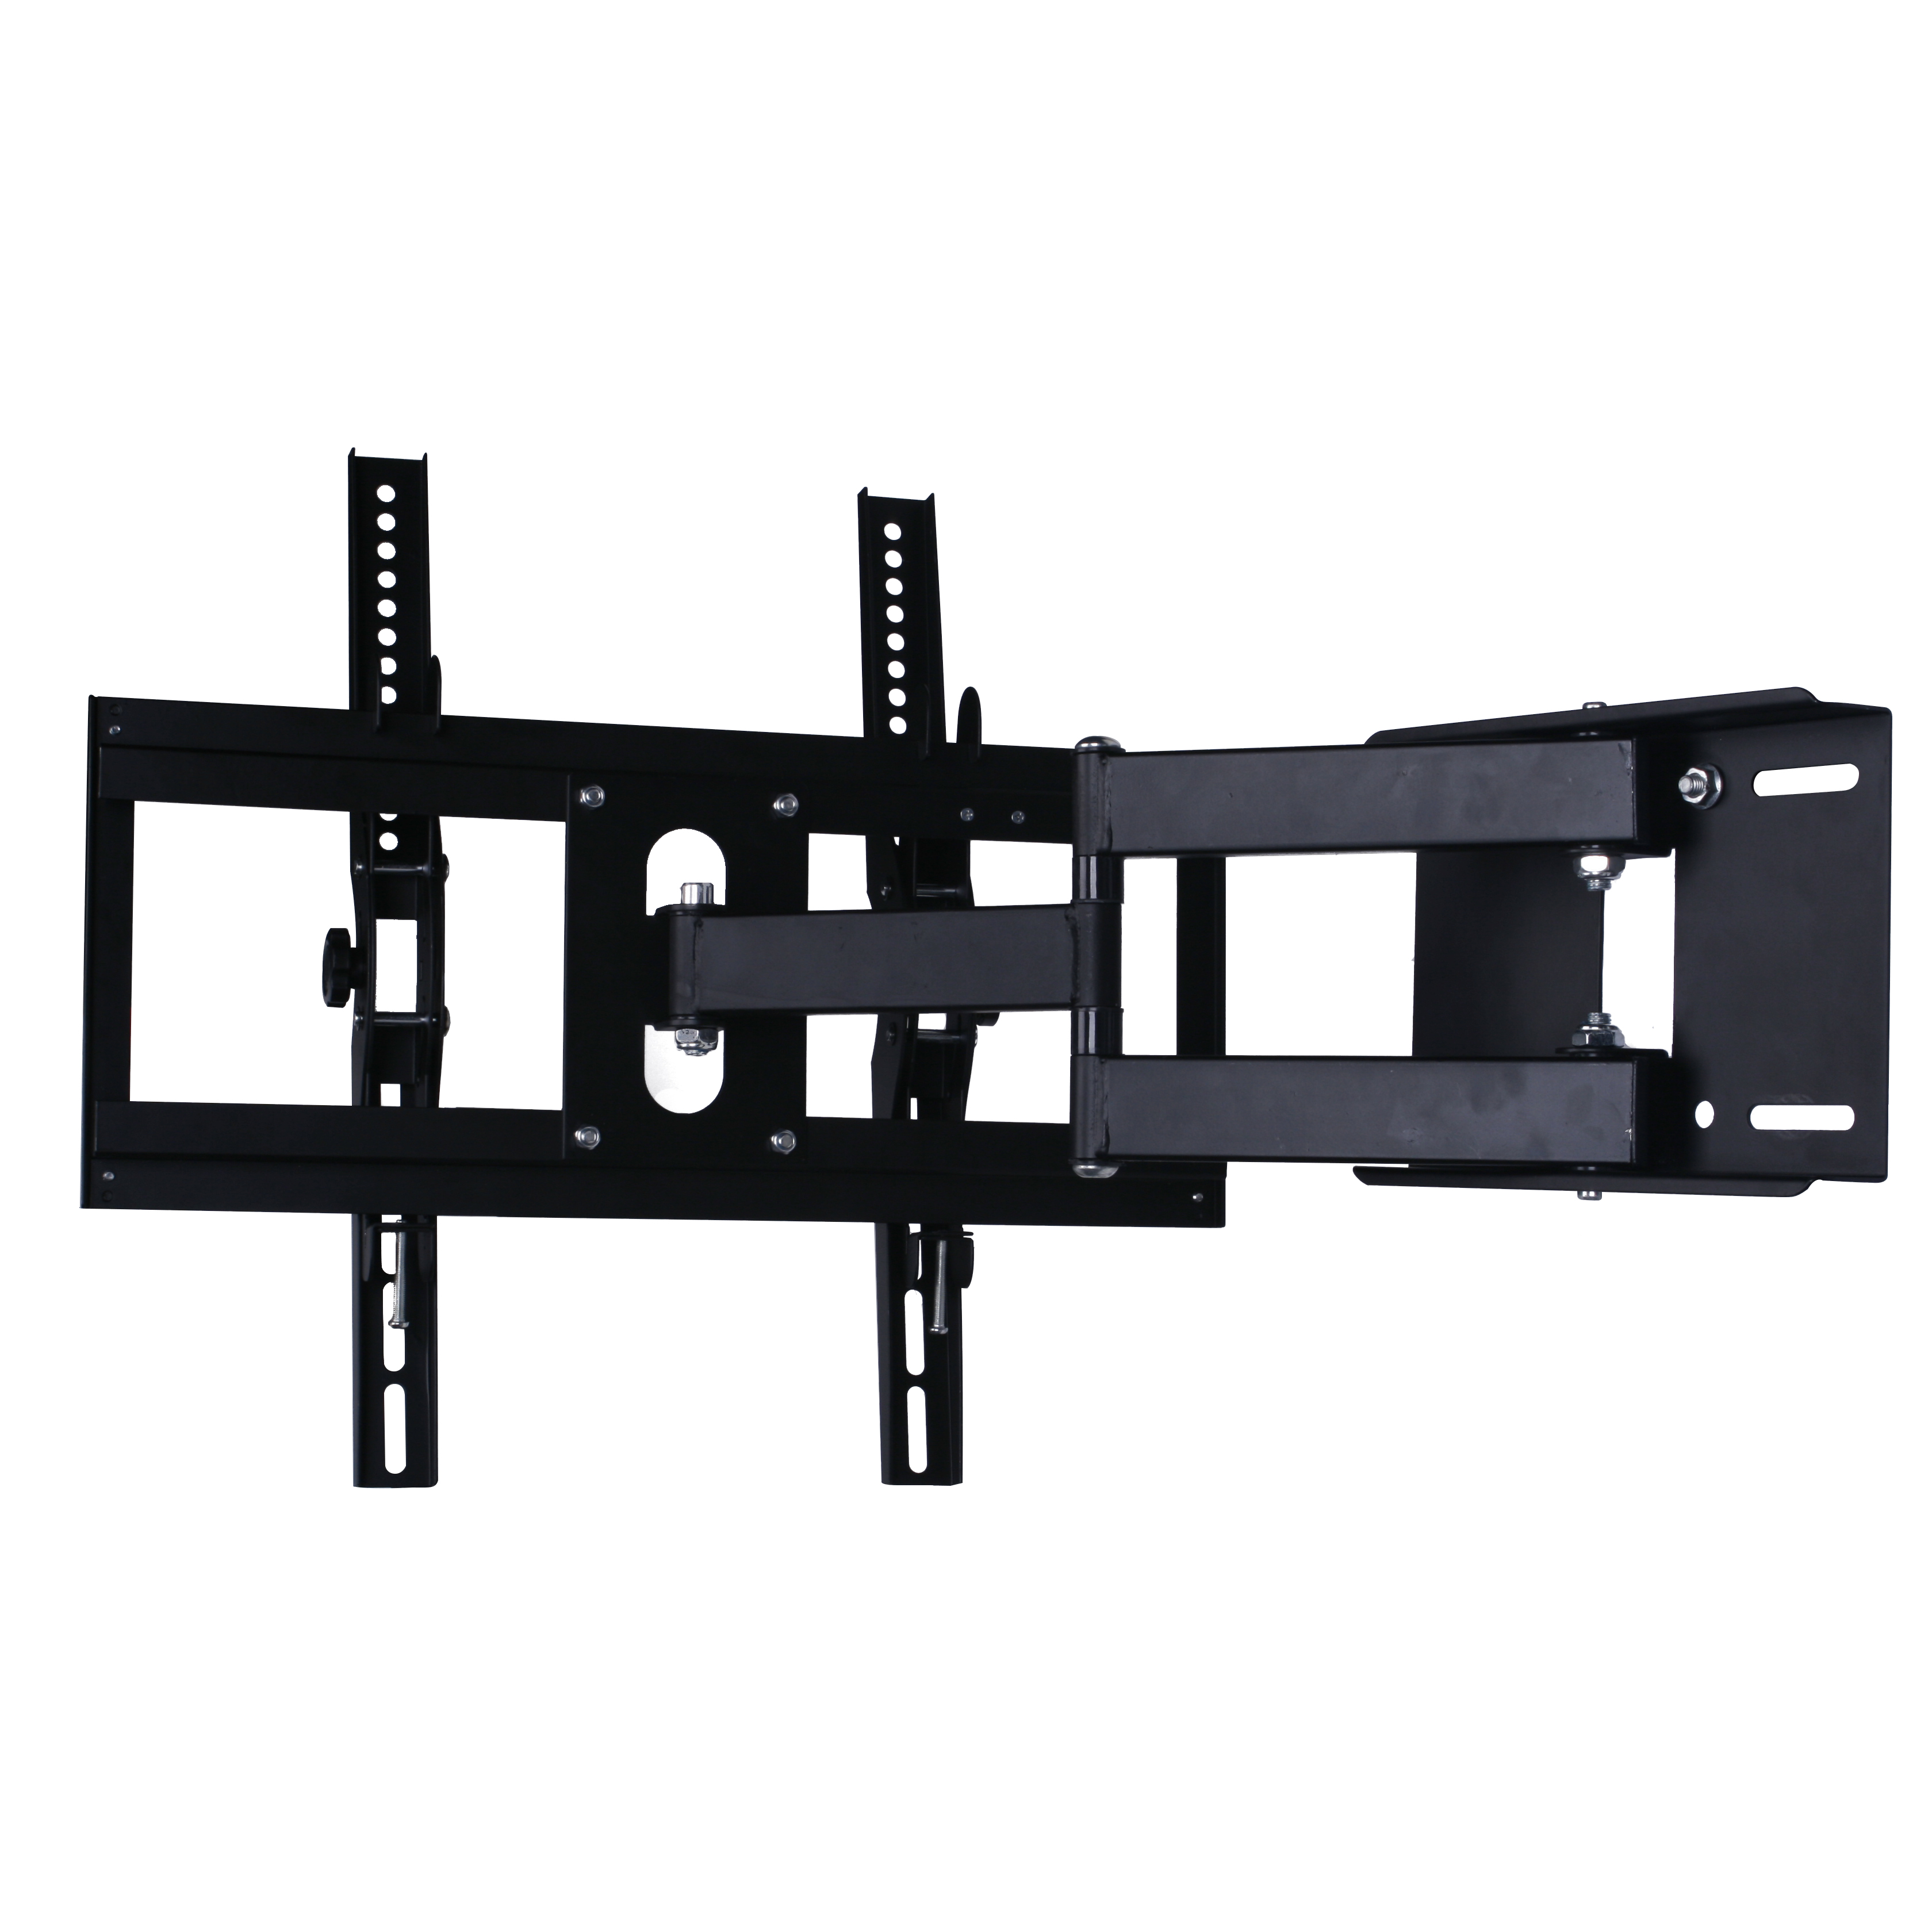 Support mural tv ecran muraux pour samsung sony 26 30 38 - Fixation mural tv samsung ...